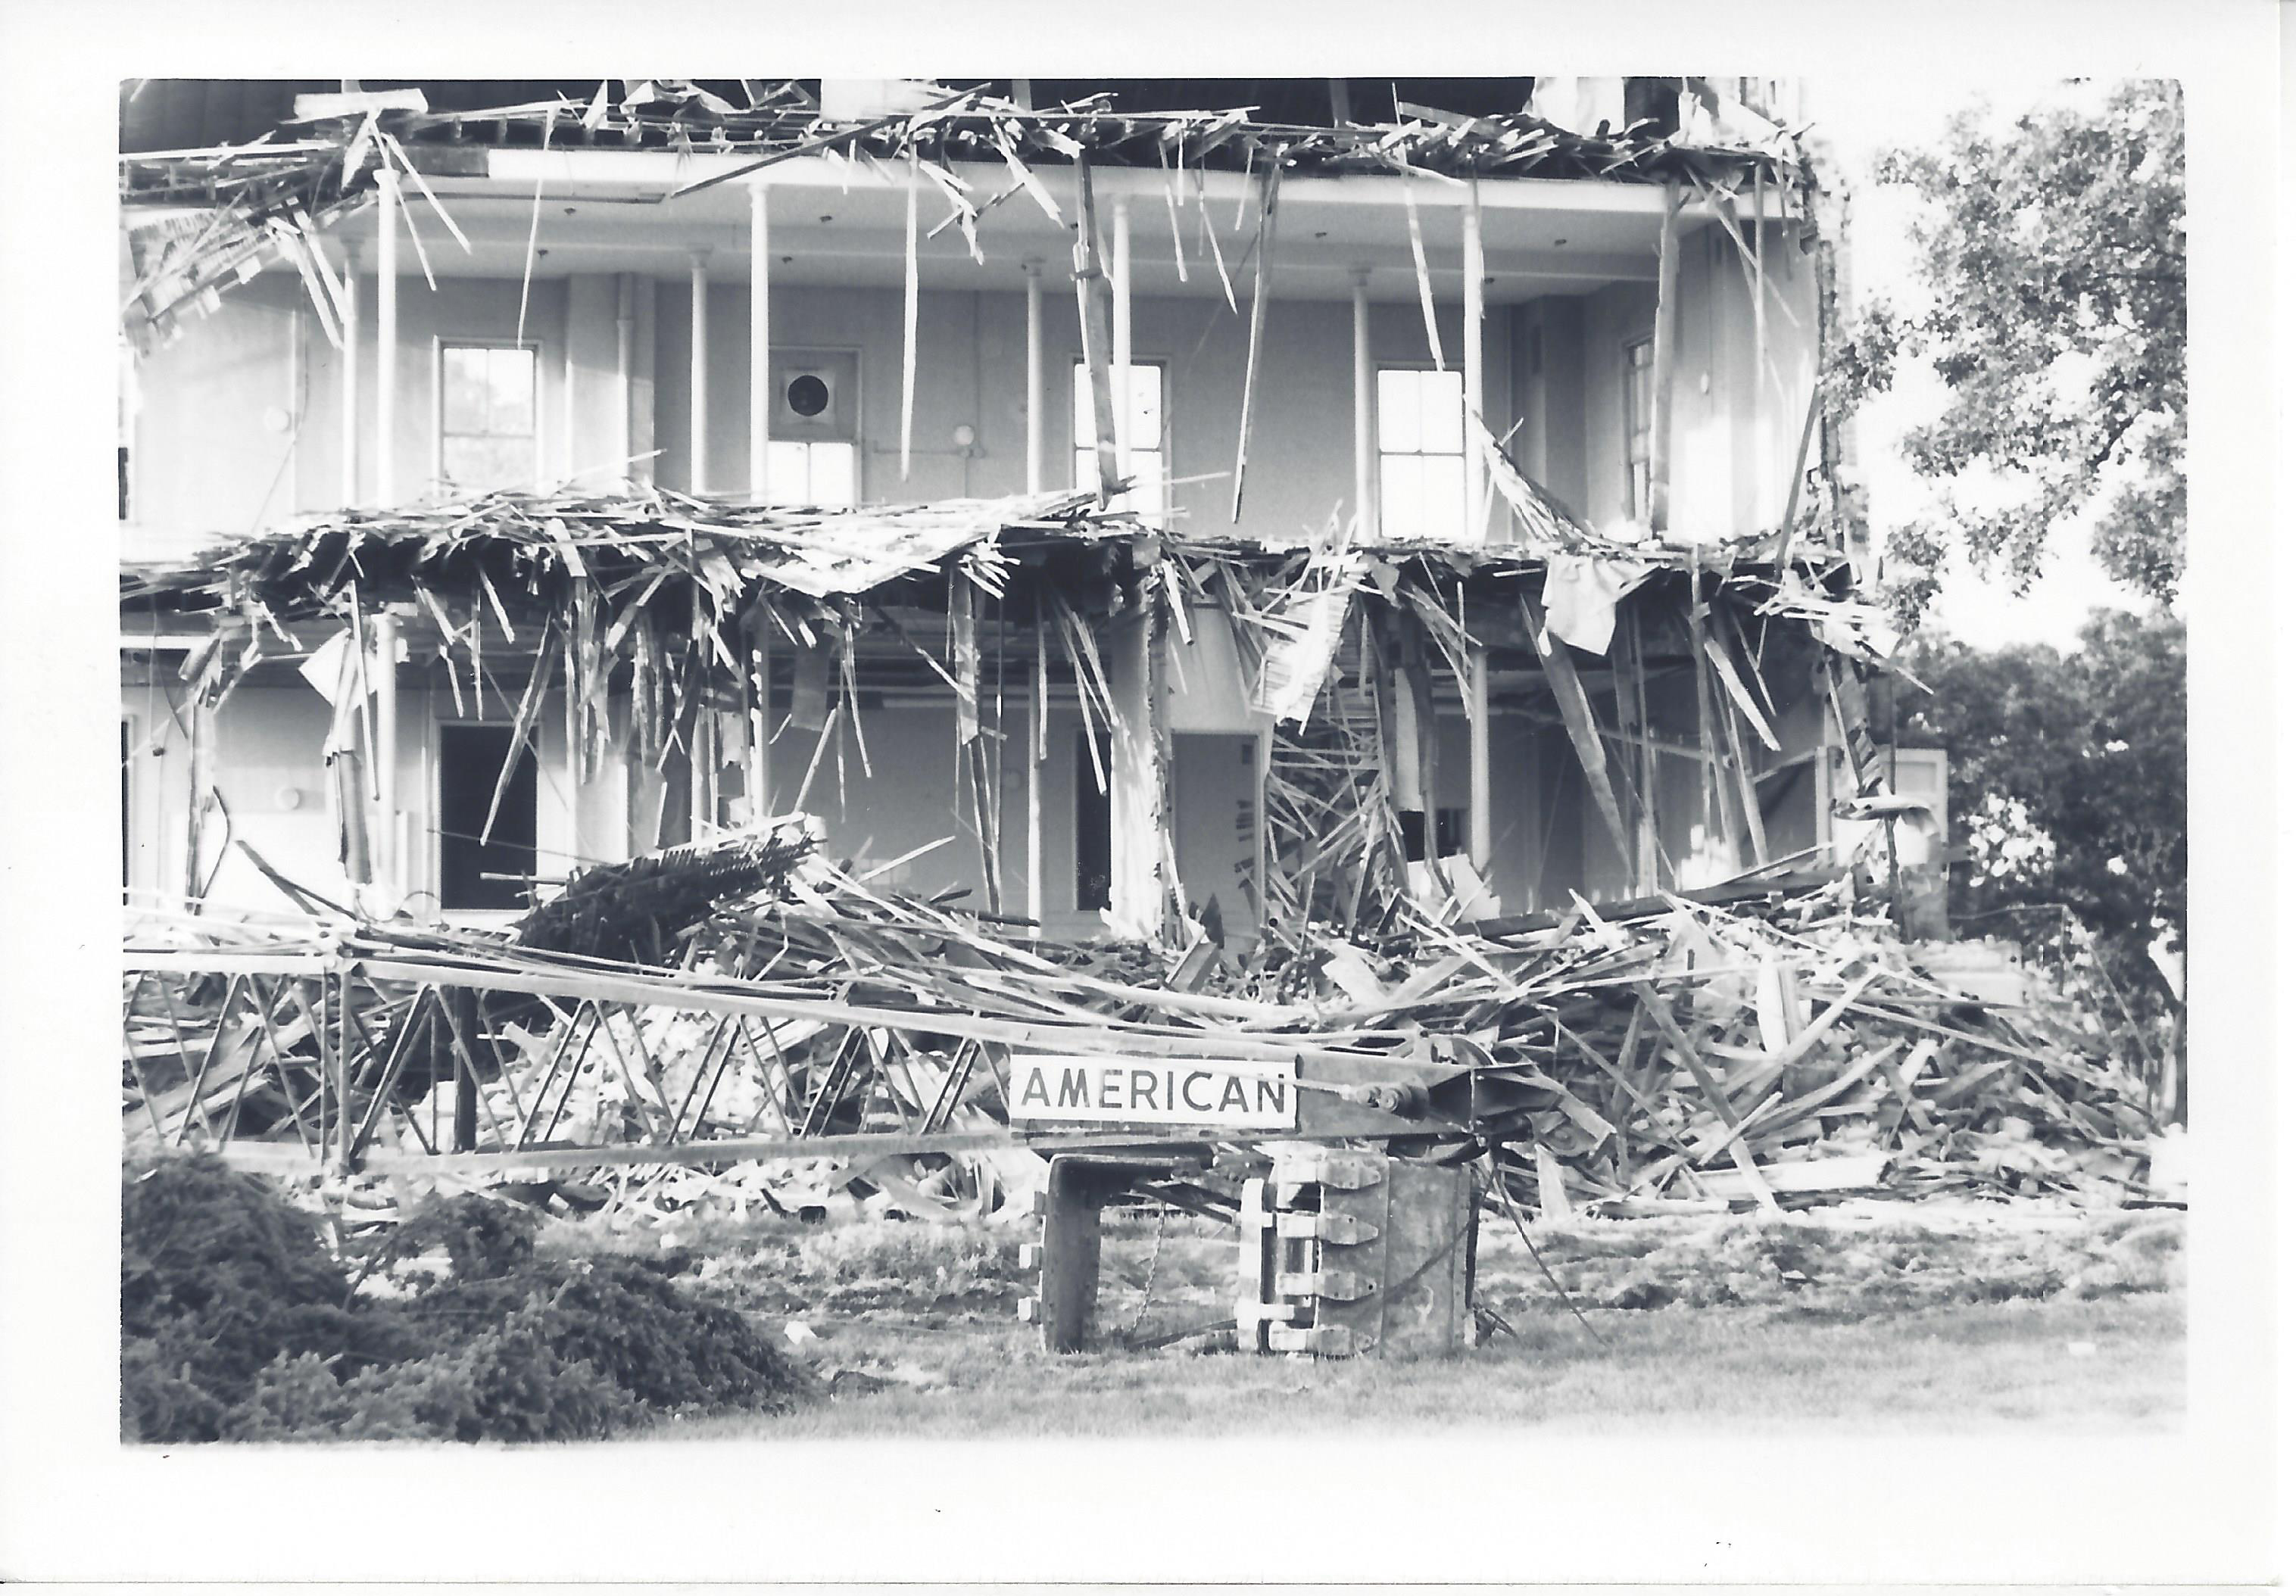 Barracks buildings on Taylor Avenue being torn down. Image by Richard E. Watson, M.D., courtesy of the author.